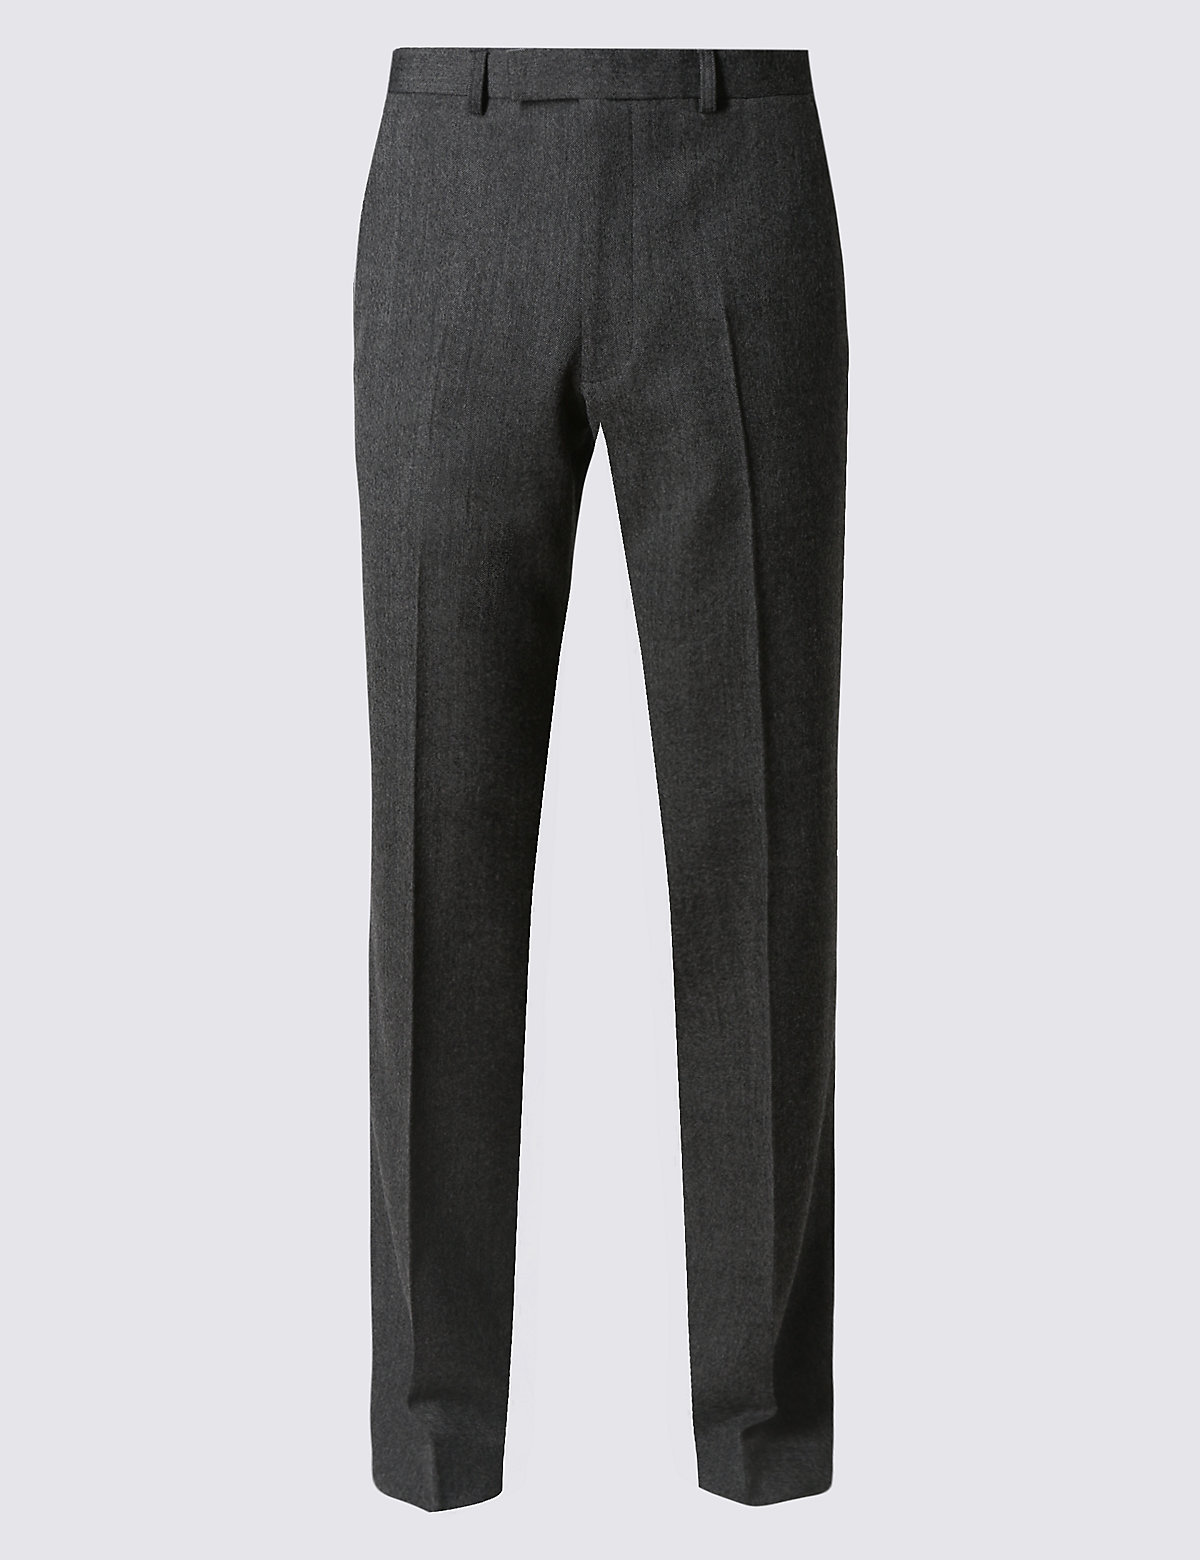 Marks & Spencer Big & Tall Grey Tailored Fit Trousers